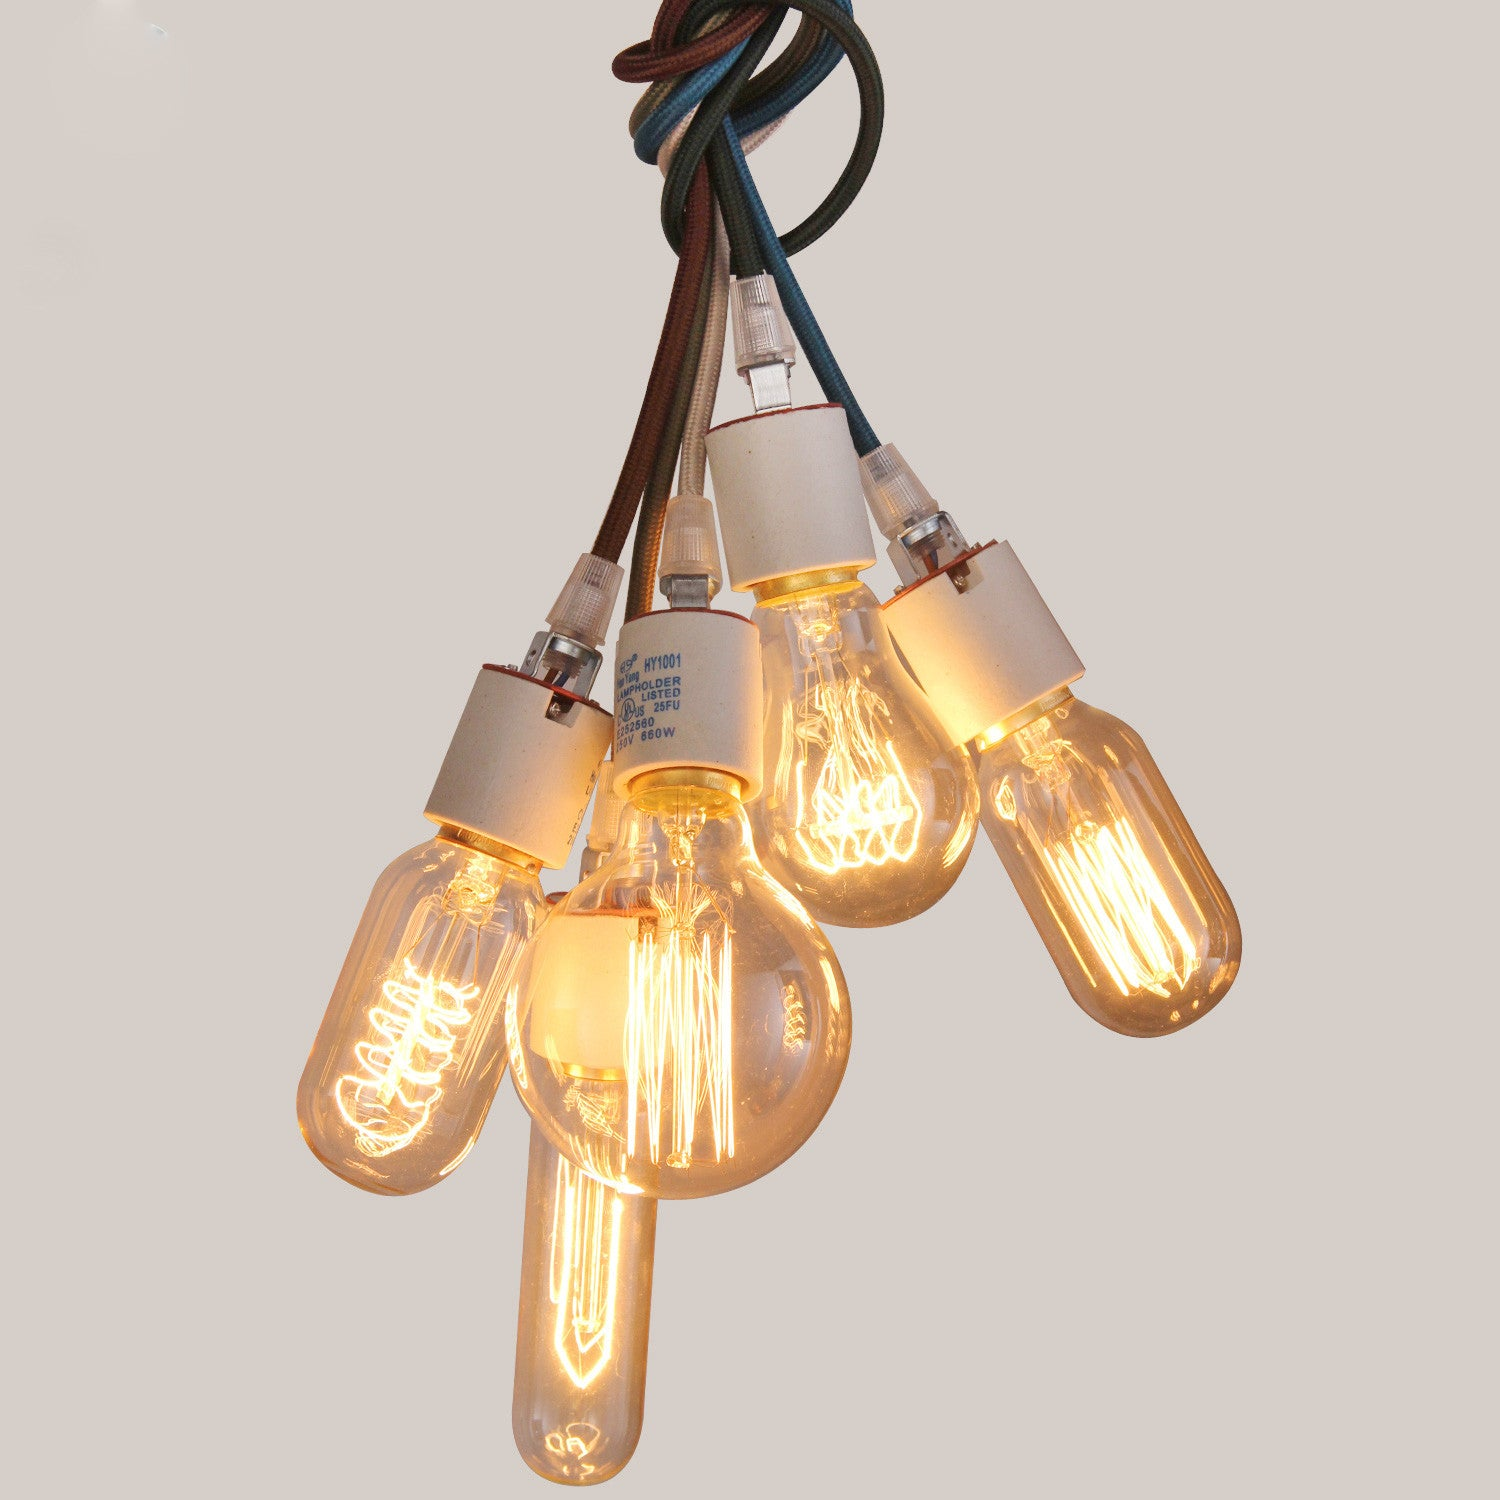 UNITARY BRAND Vintage Hanging Pendant Light Max 200W With 5 Lights Painted Finish